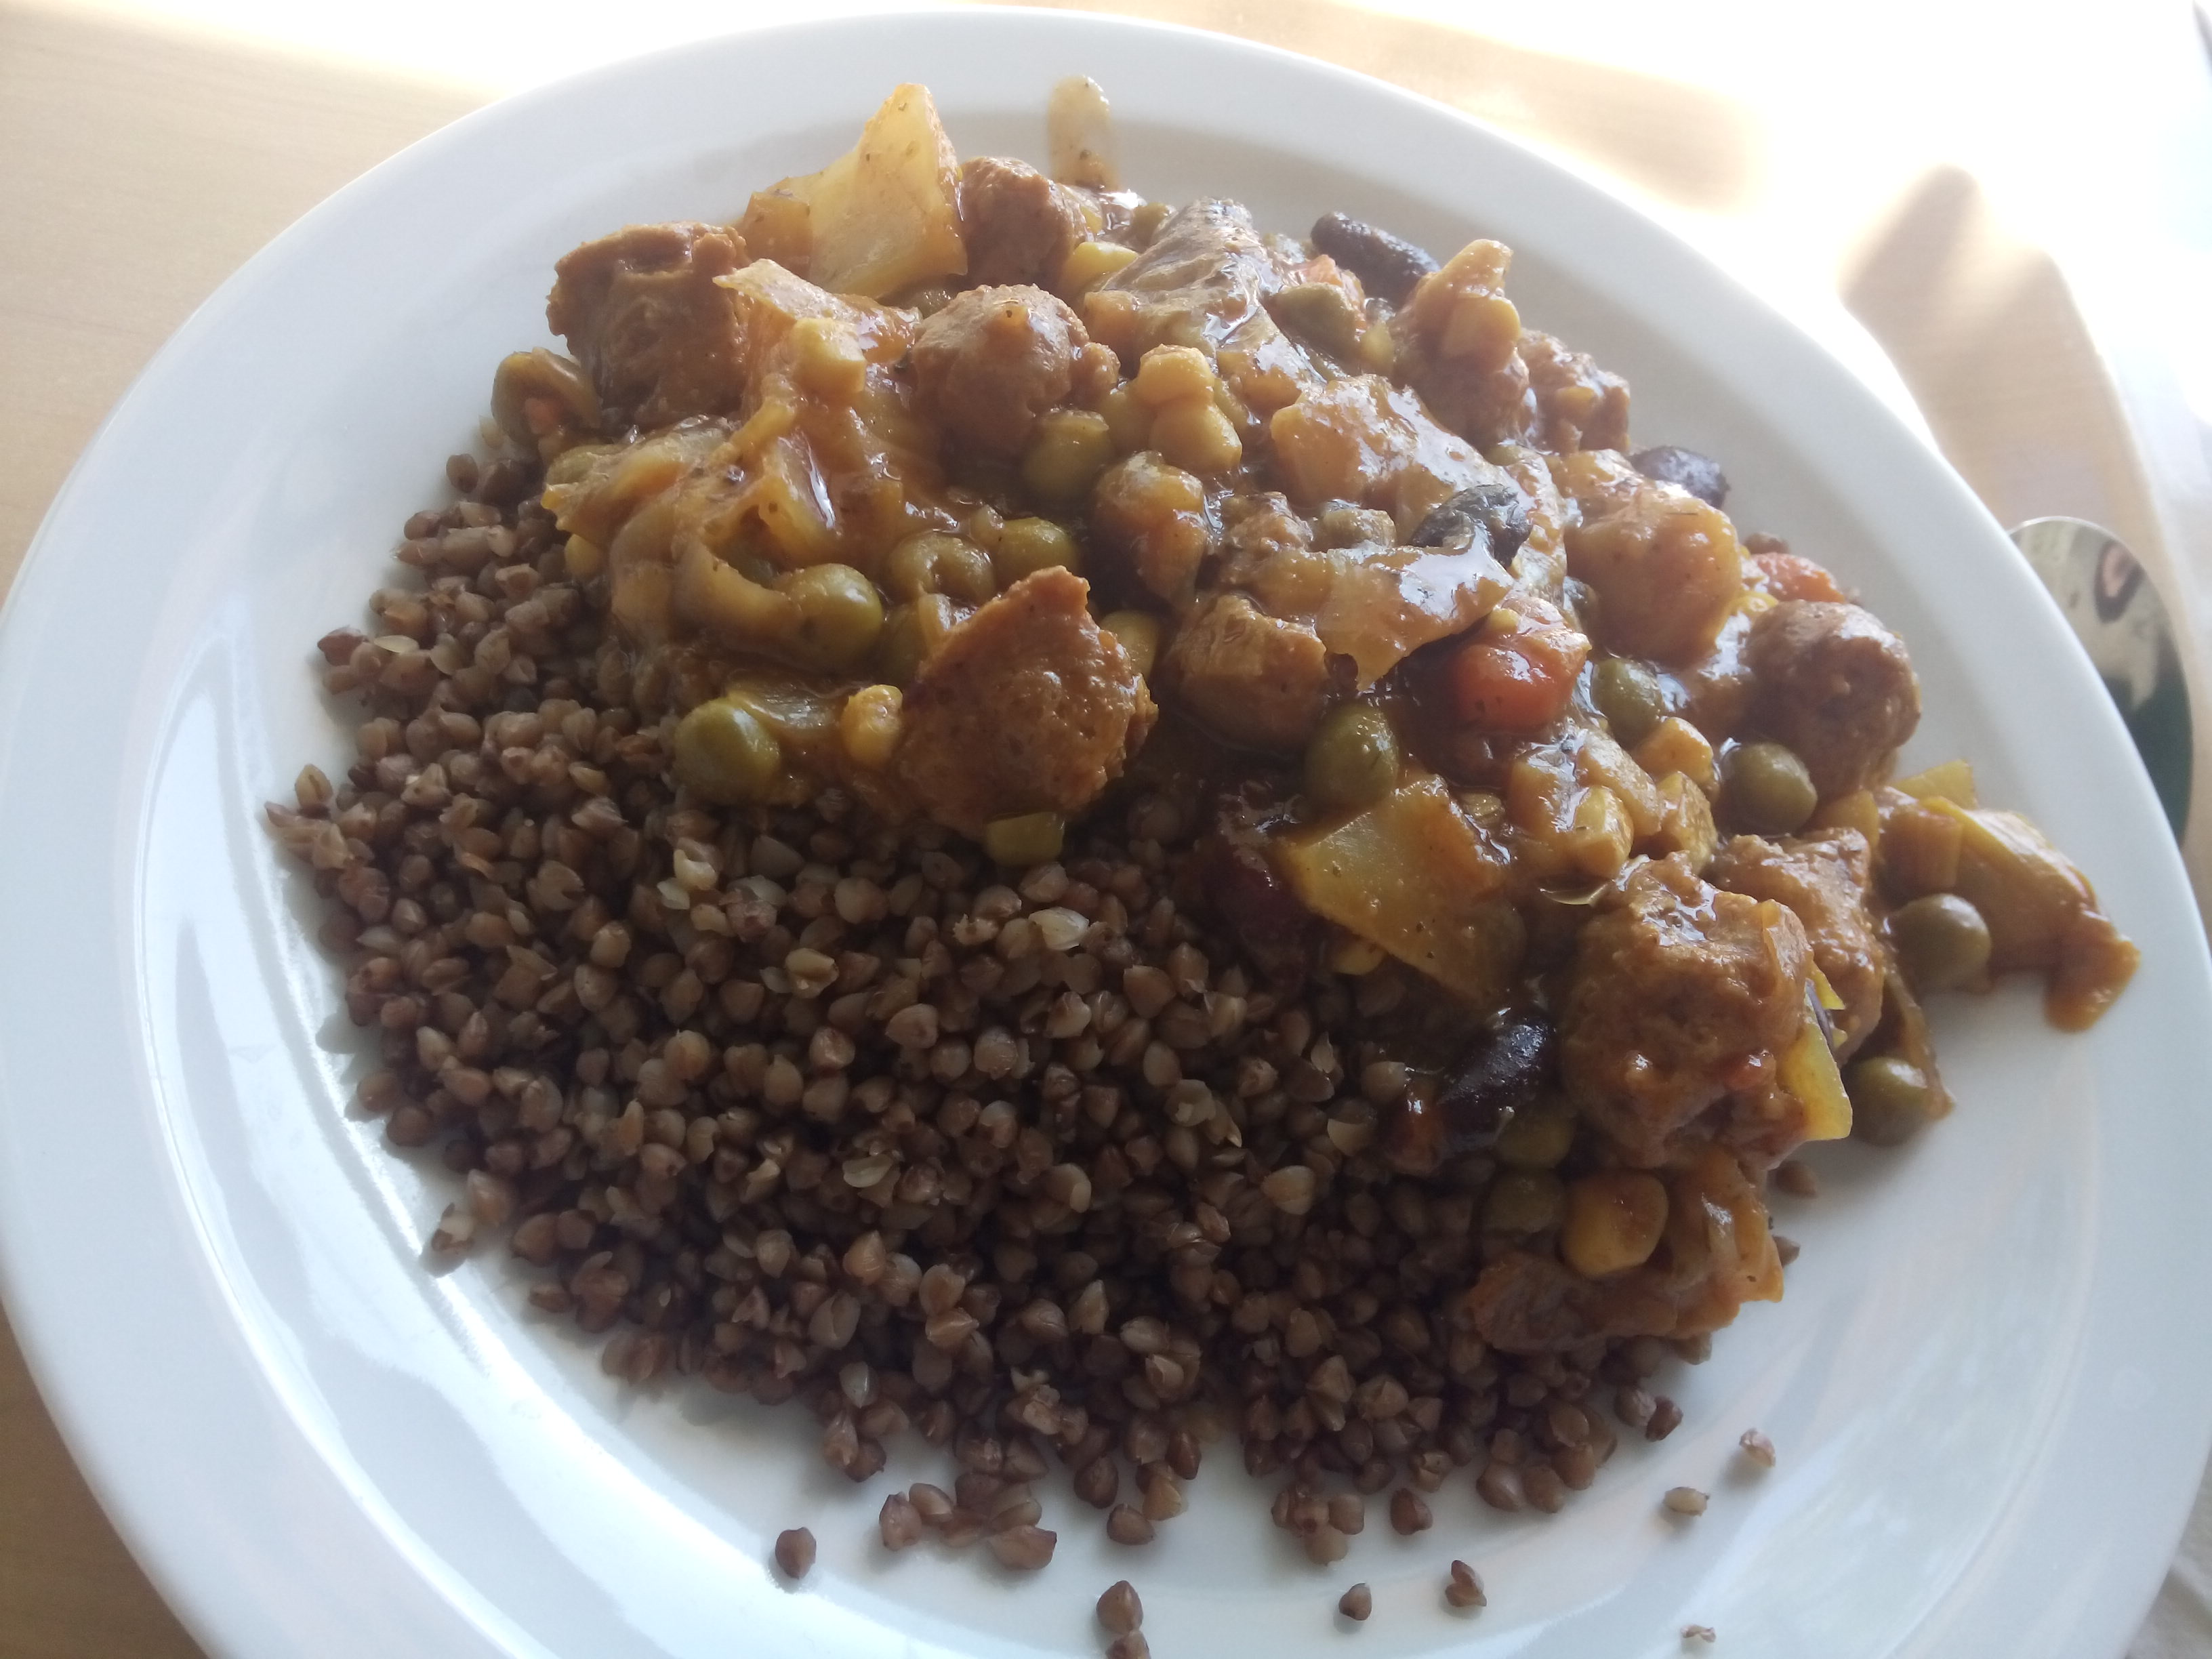 A white plate with half buckwheat and half vegetable soya goulash